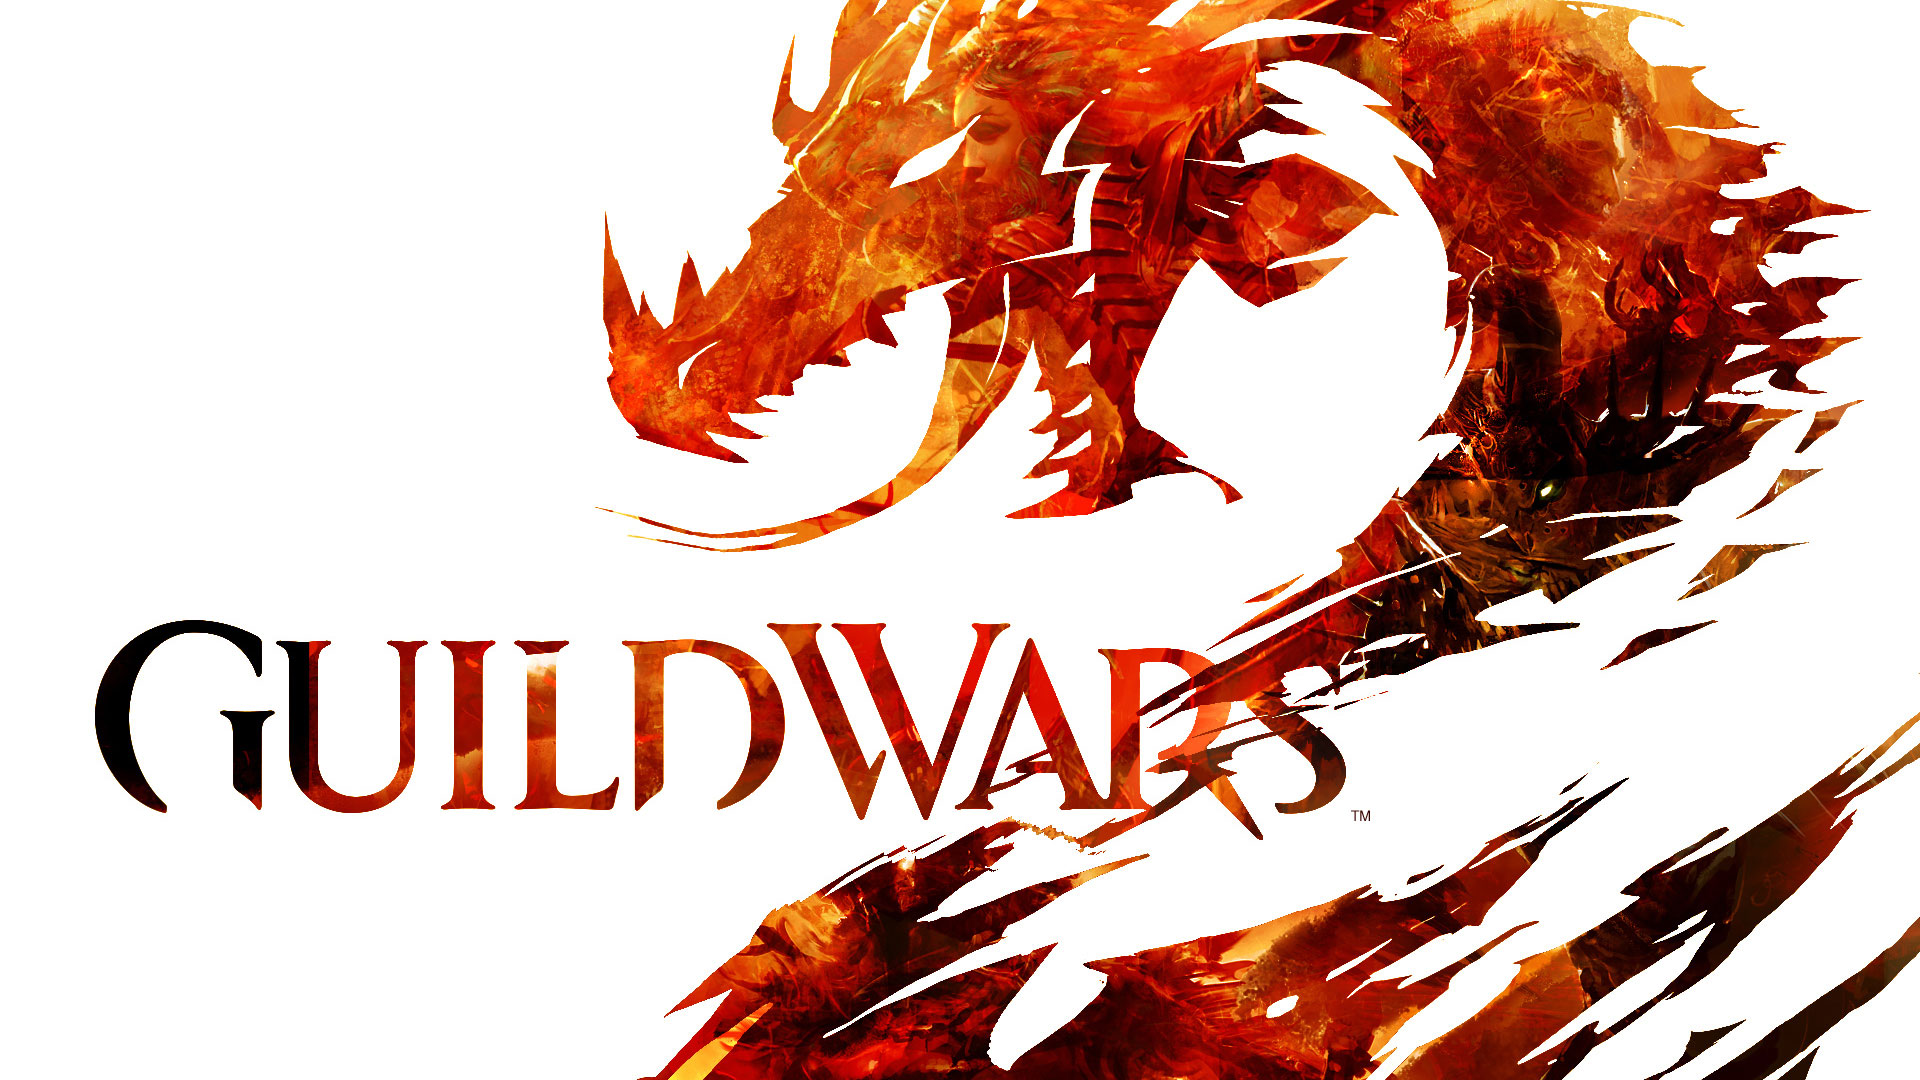 Guild Wars 2 Breaks Record Sales as Fastest Selling MMORPG